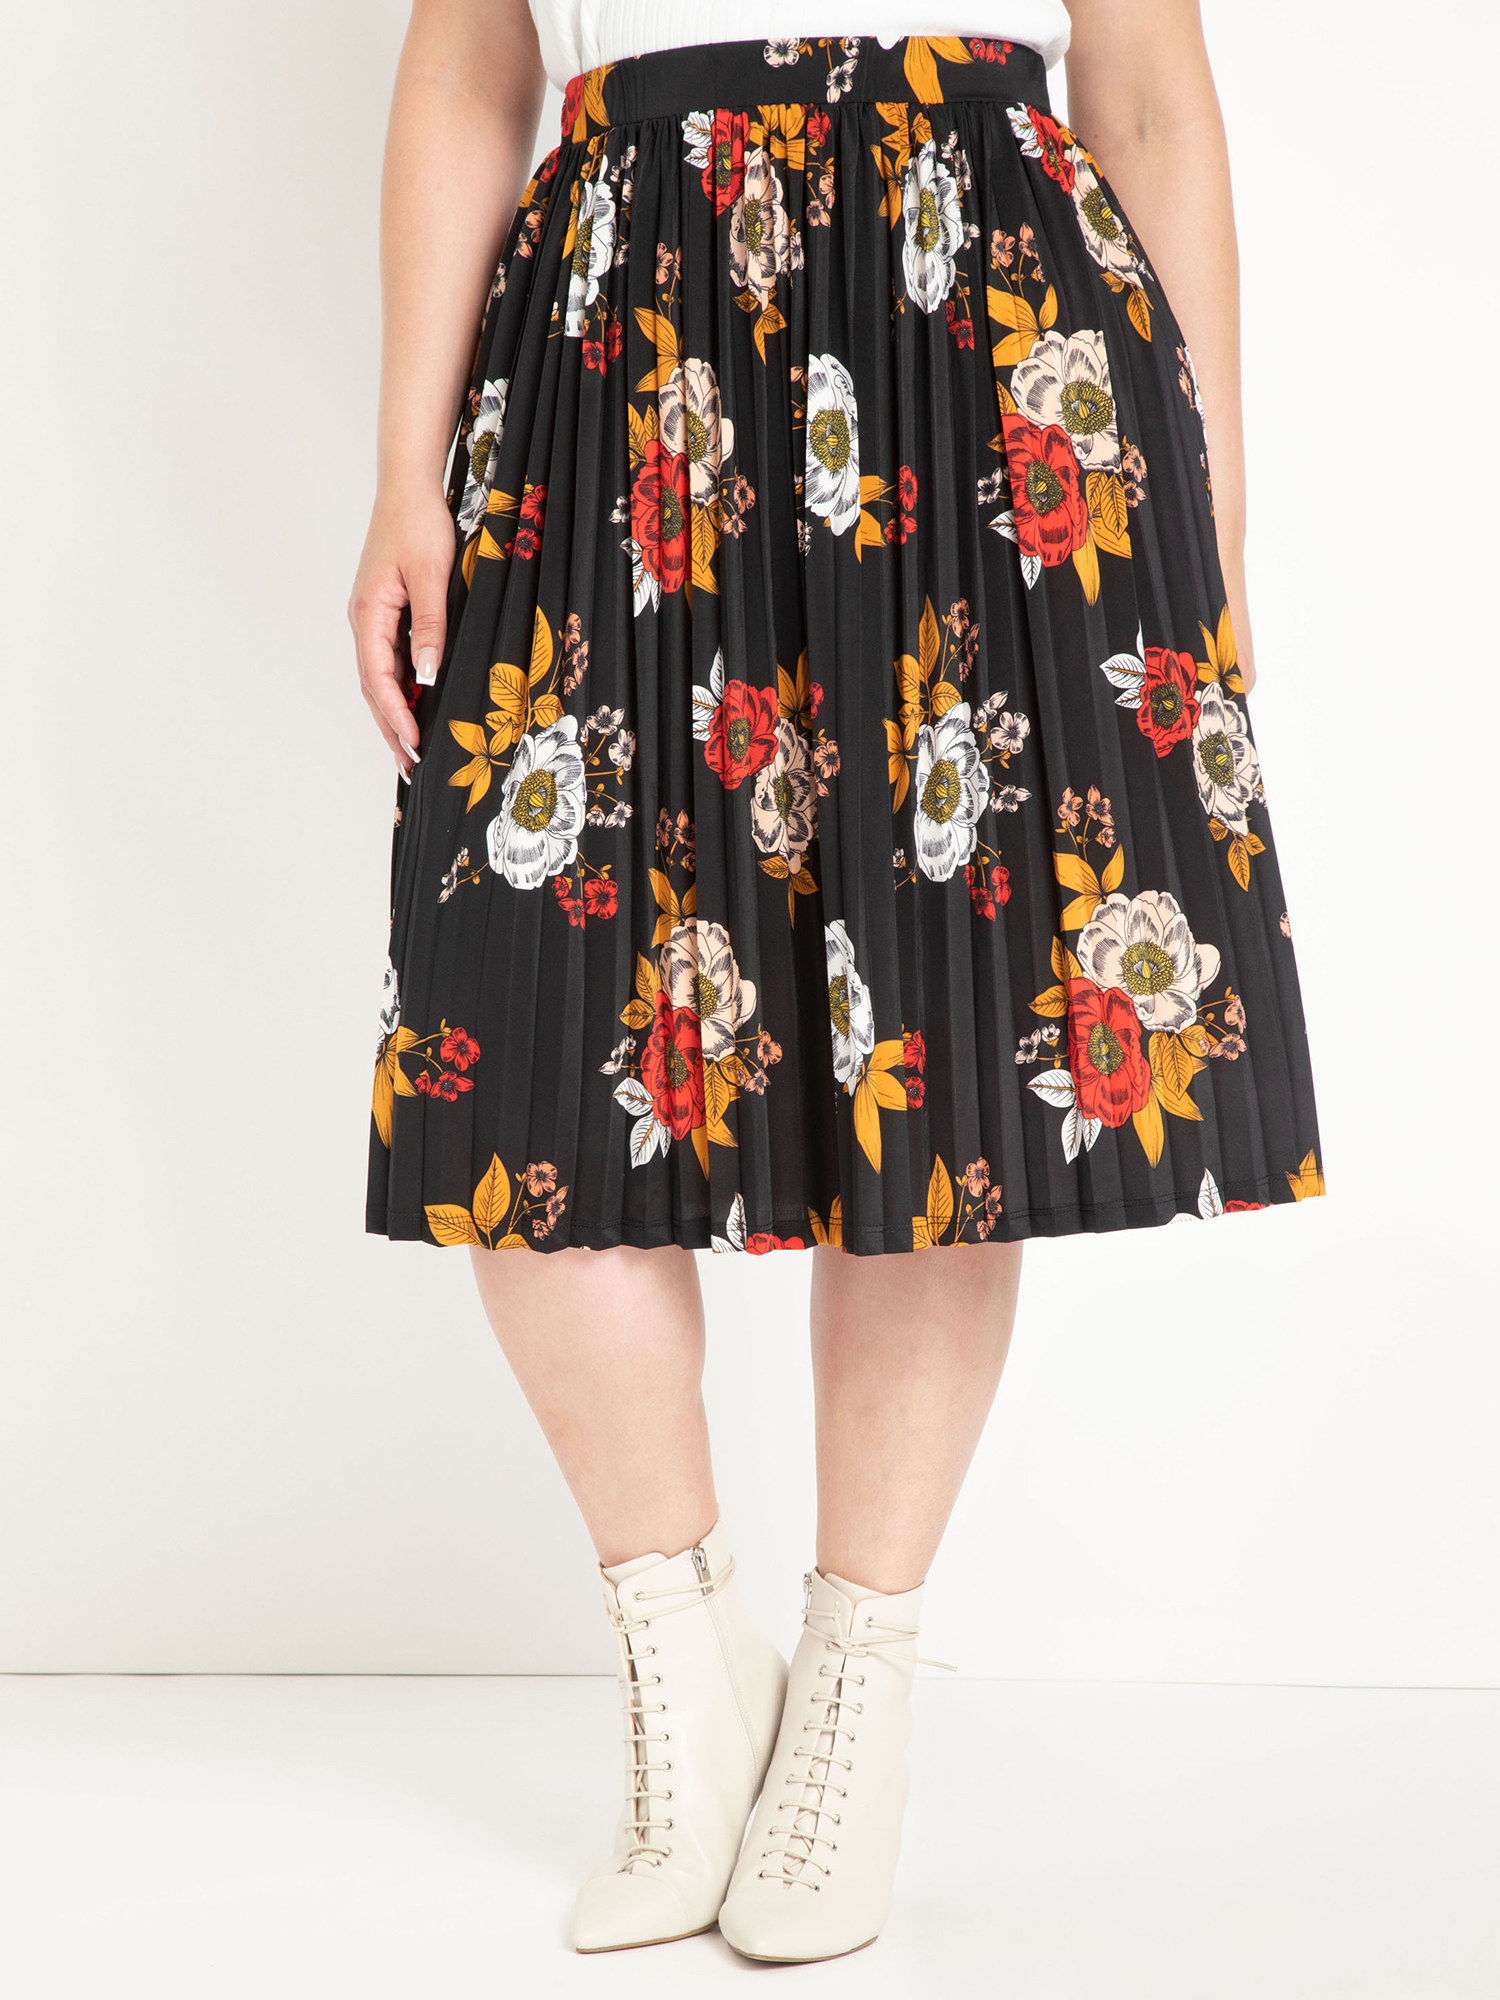 person wearing a pleated black midi skirt with flowers on it